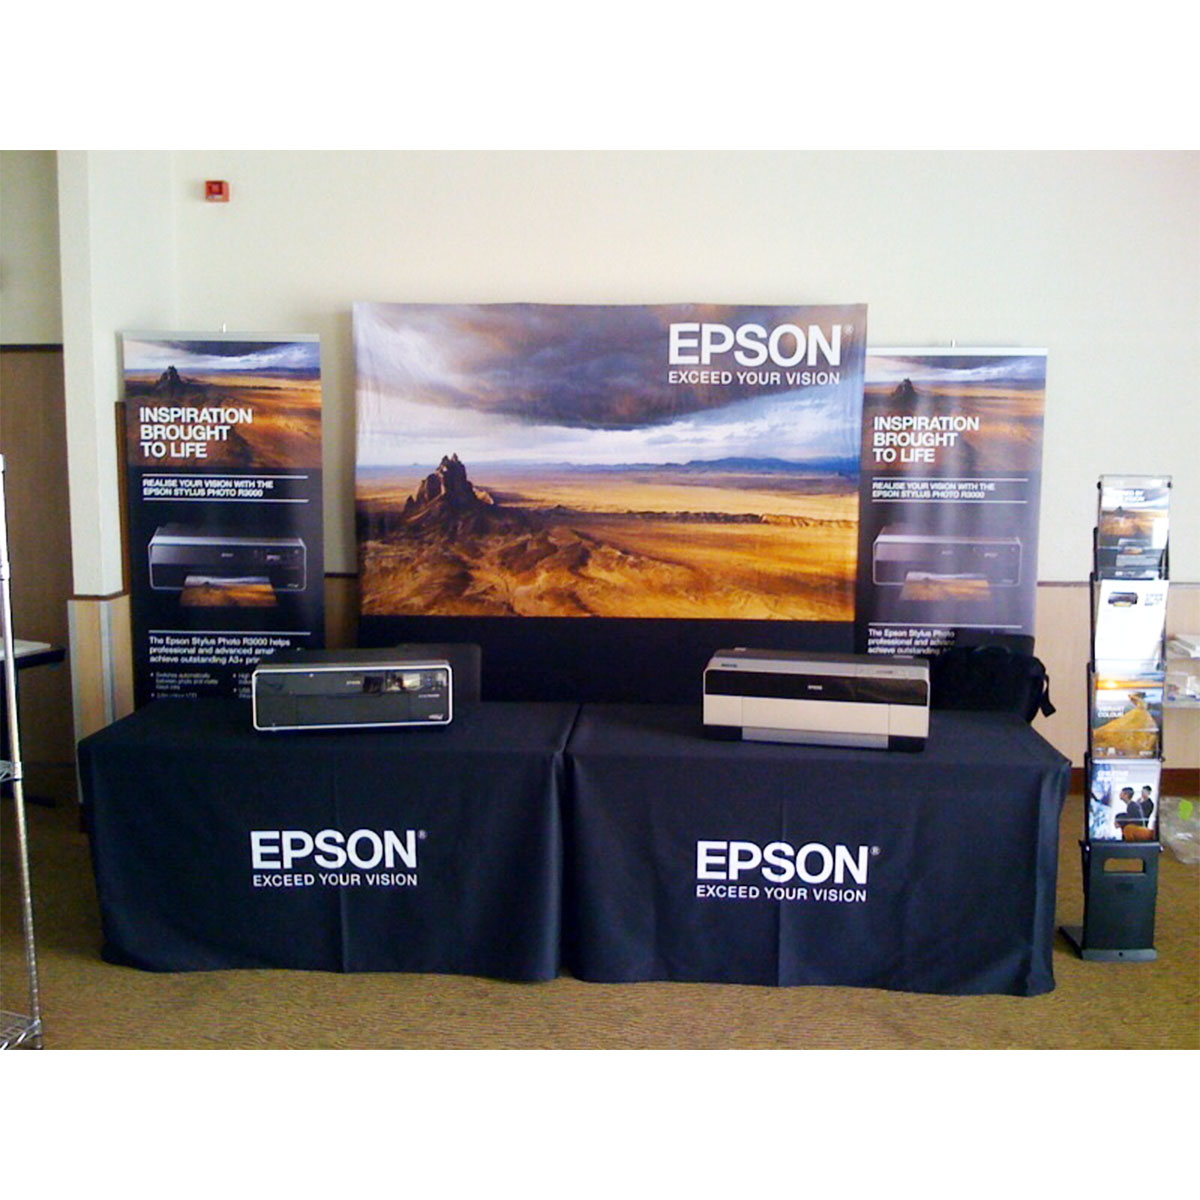 Exhibition Stand Tablecloths : Printed tablecloths exhibition tablecloths